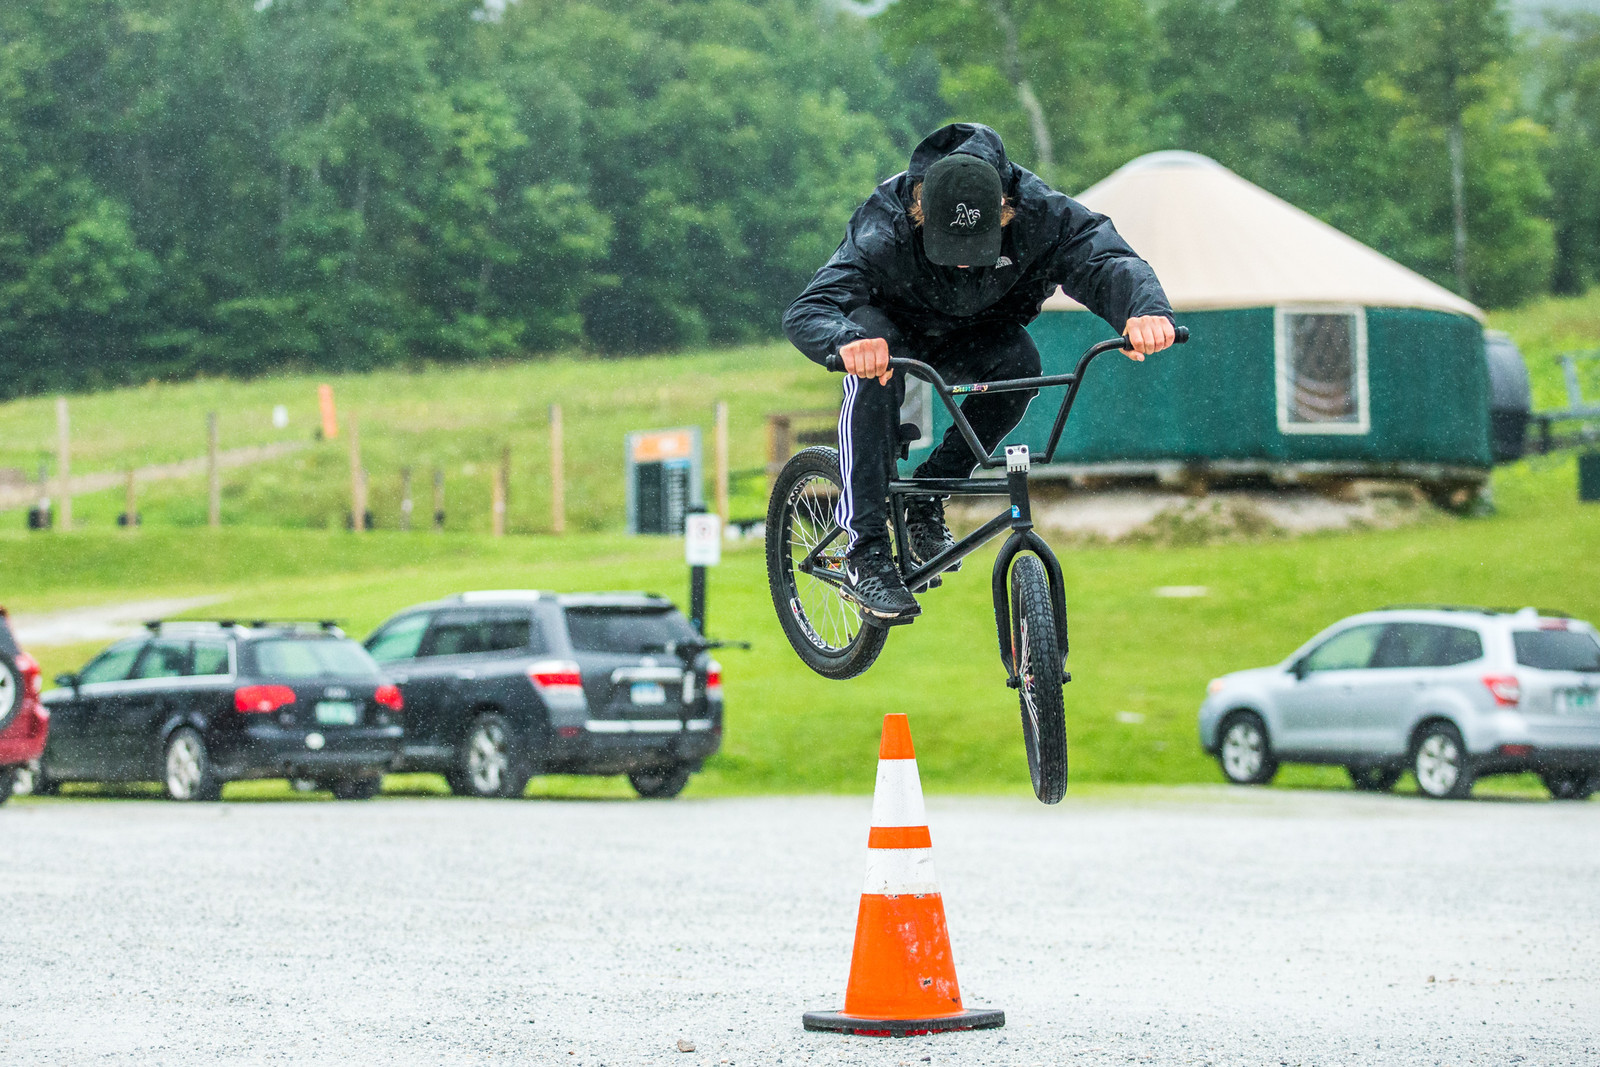 Parking lot shenanigans in the rain are a staple of any good event. Tanner Stephens gets his hop on.